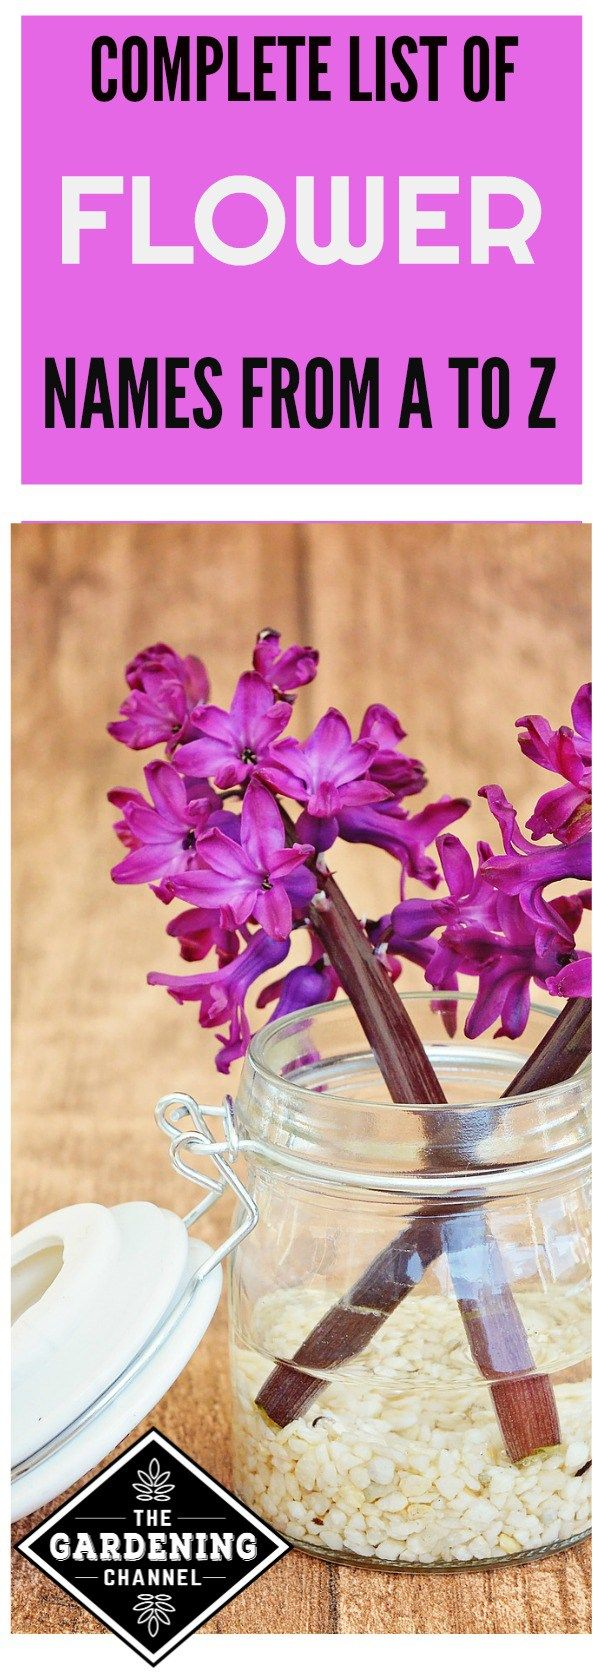 List of Flower Names, from A to Z Flower names, Flowers